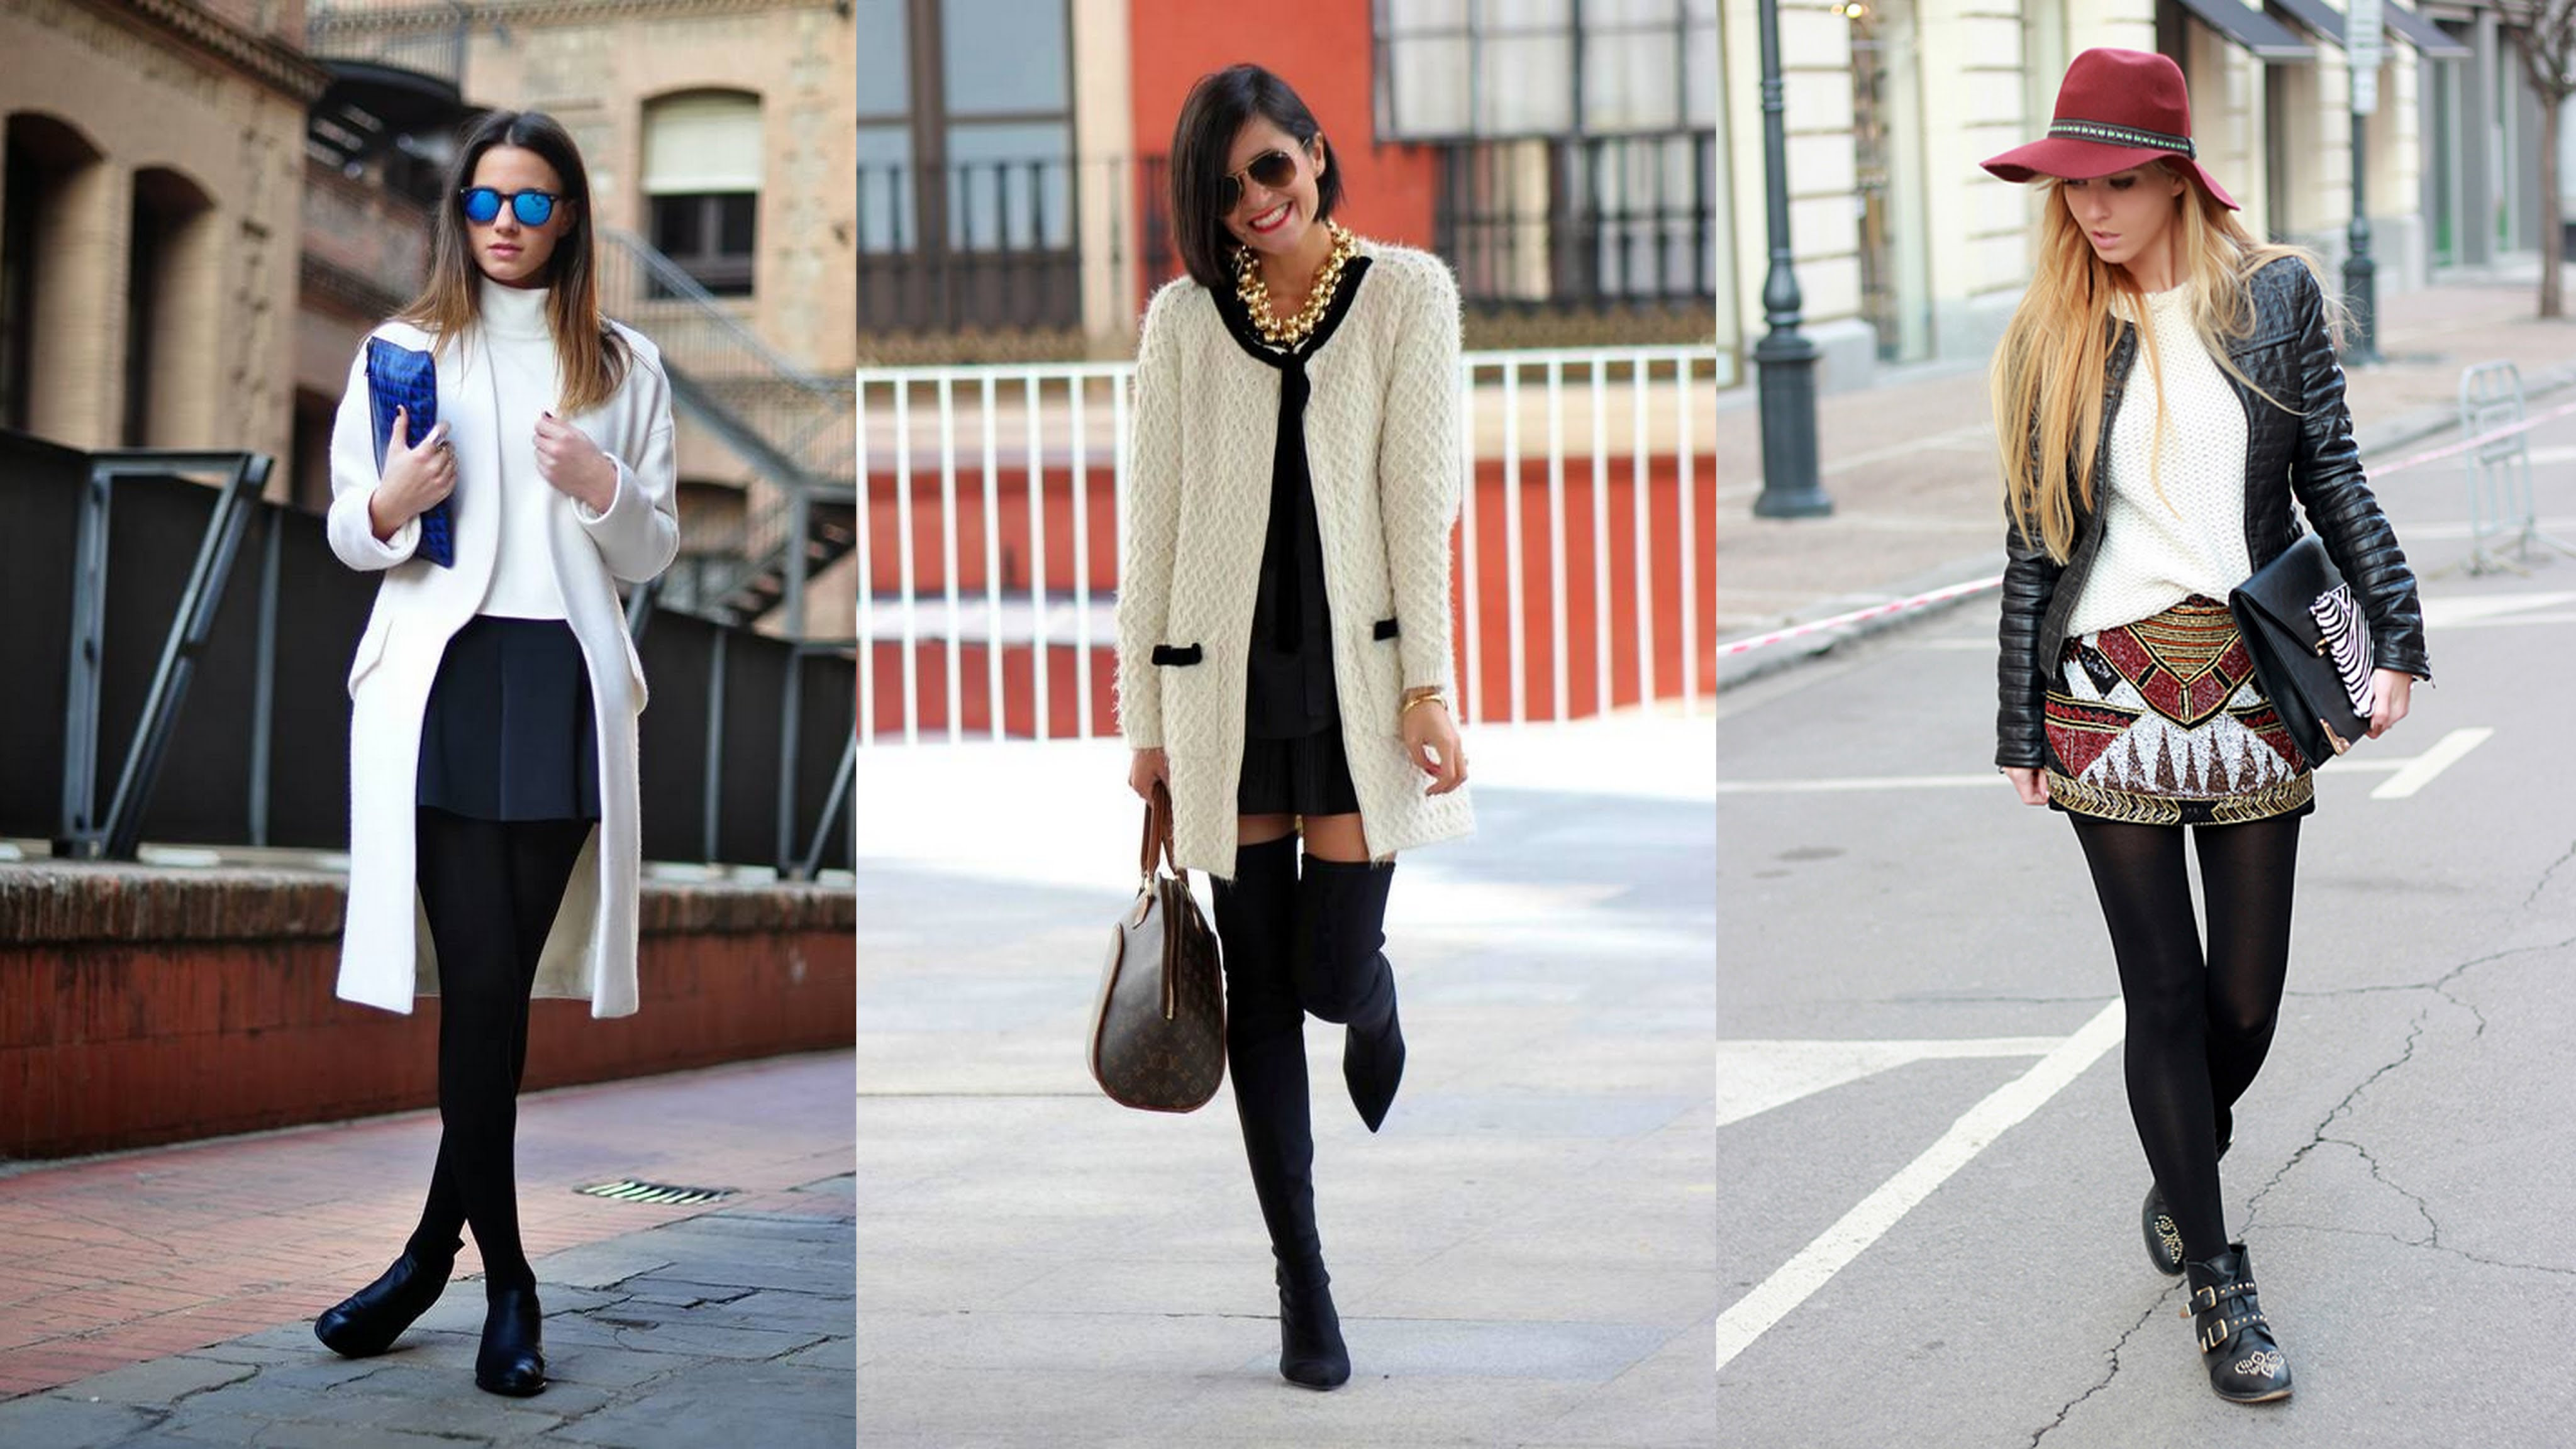 21 Cute Winter Outfit Ideas for 21 - Outfits for Winter - Styles